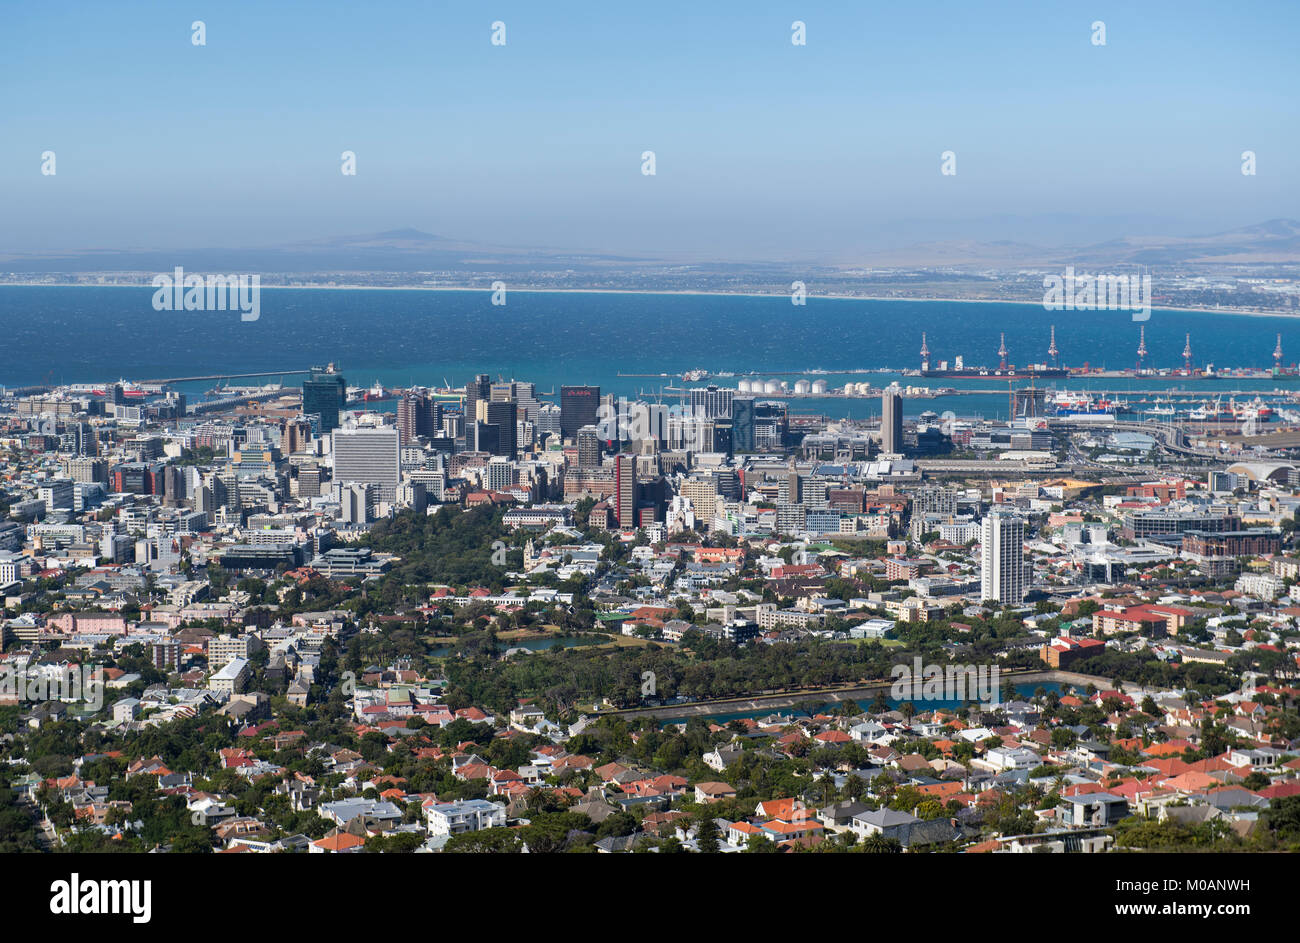 View of Cape Town city center from the foot of Table Mountain, South Africa - Stock Image